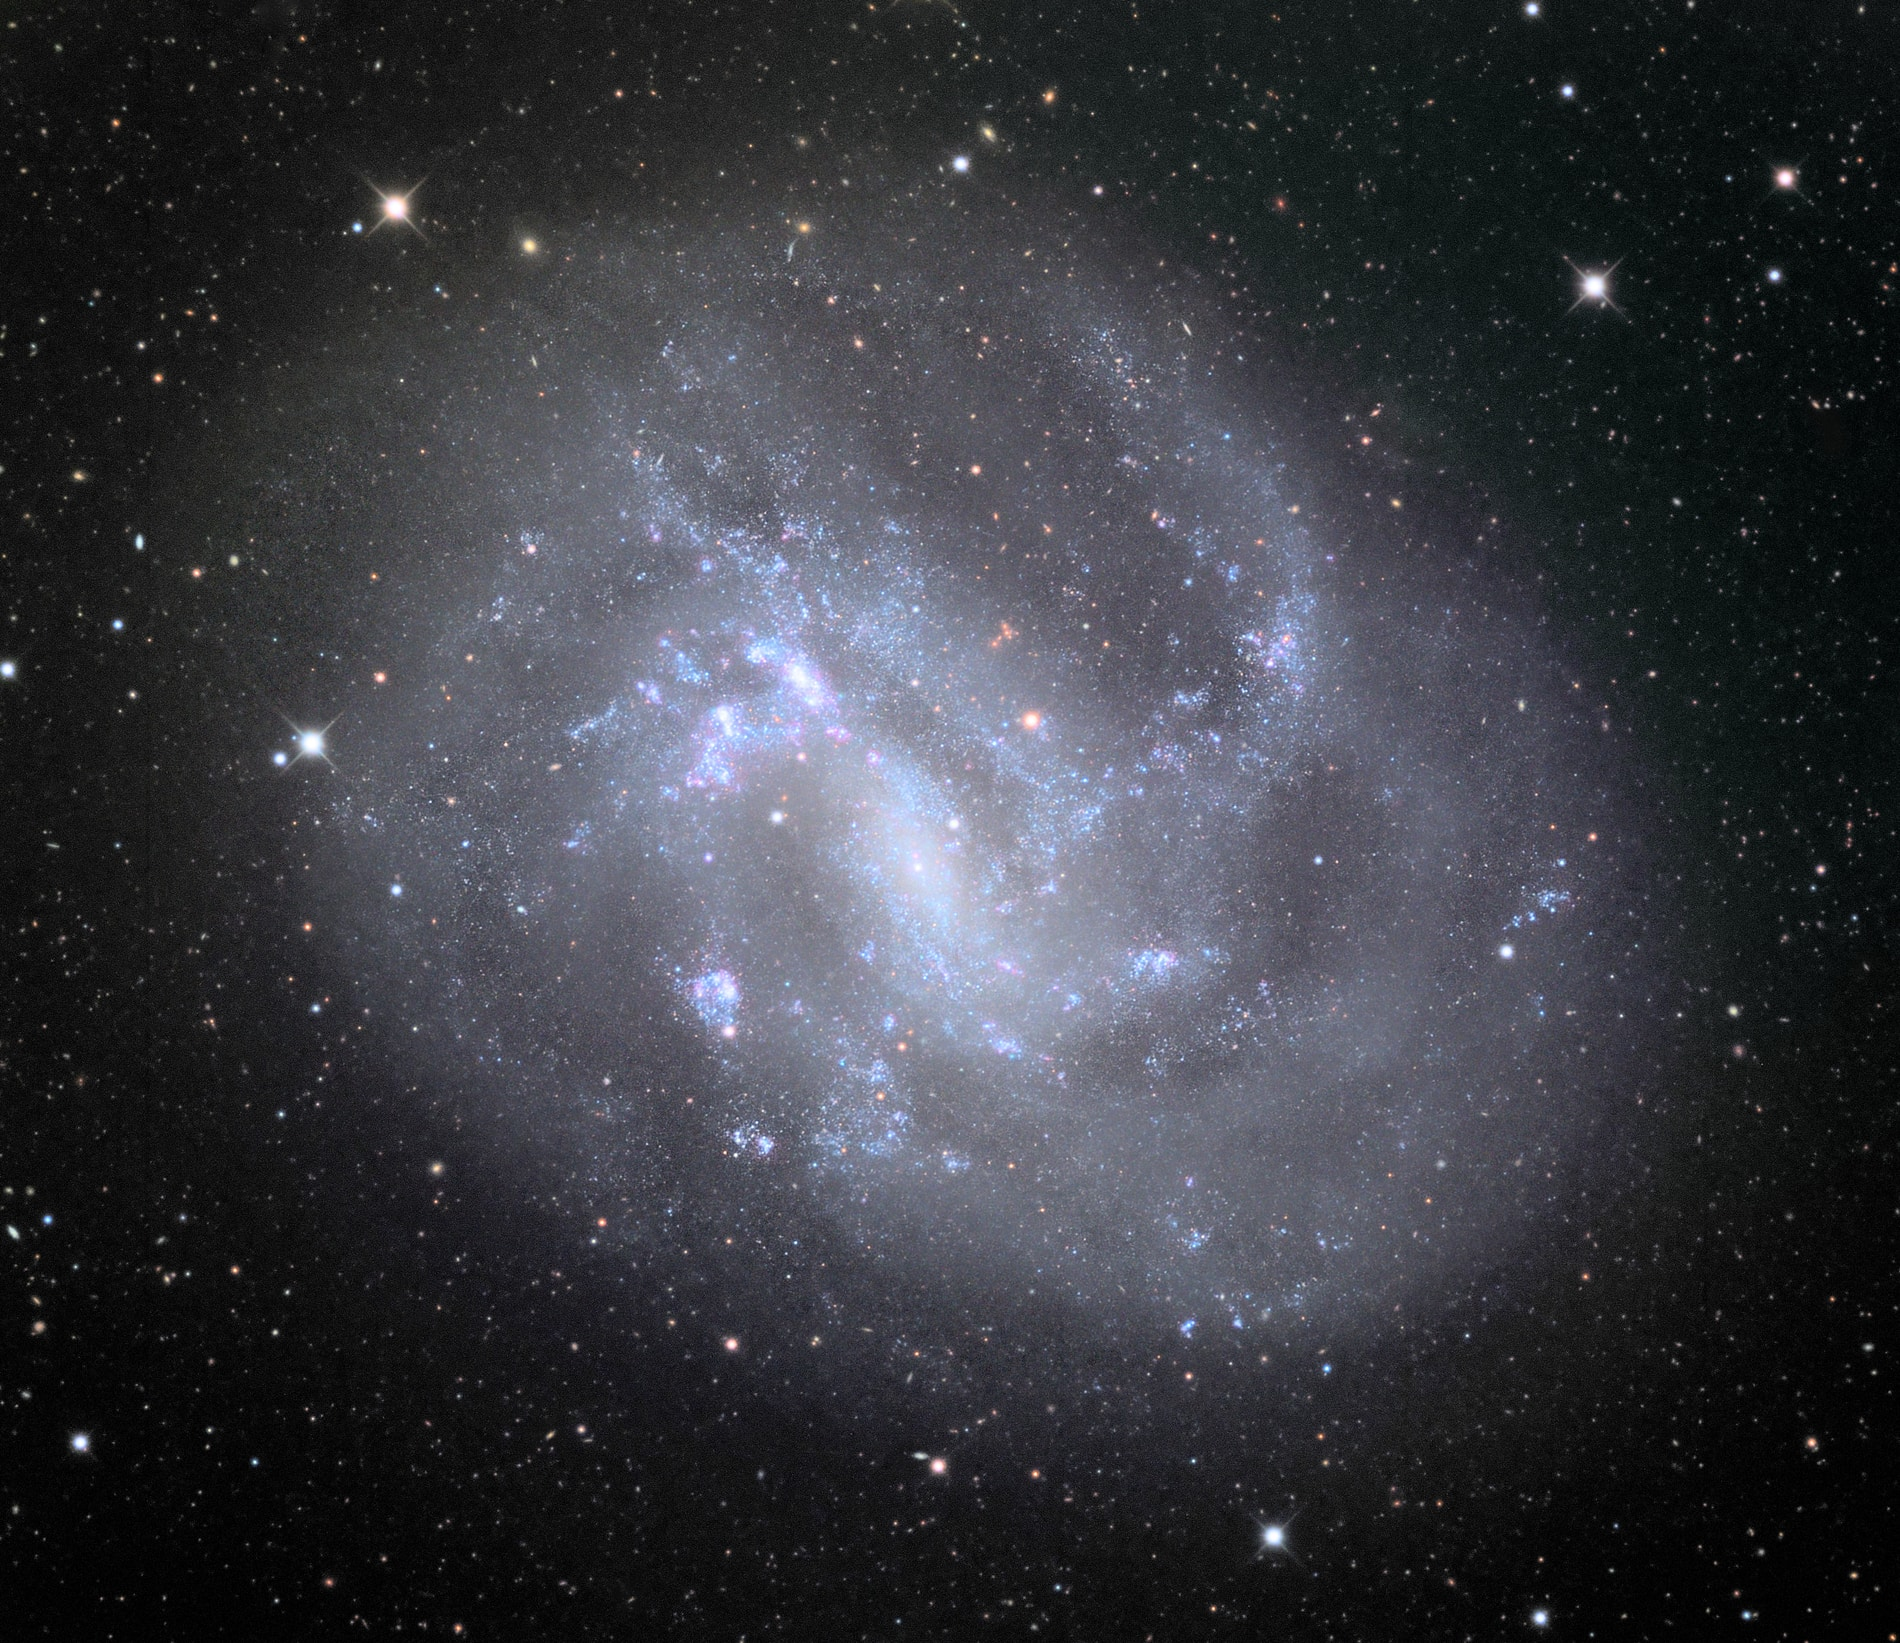 NGC 4395 is imaged with the Schulman Telescope at Mount Lemmon Observatory. Image credit: Adam Block/Mount Lemmon SkyCenter/University of Arizona